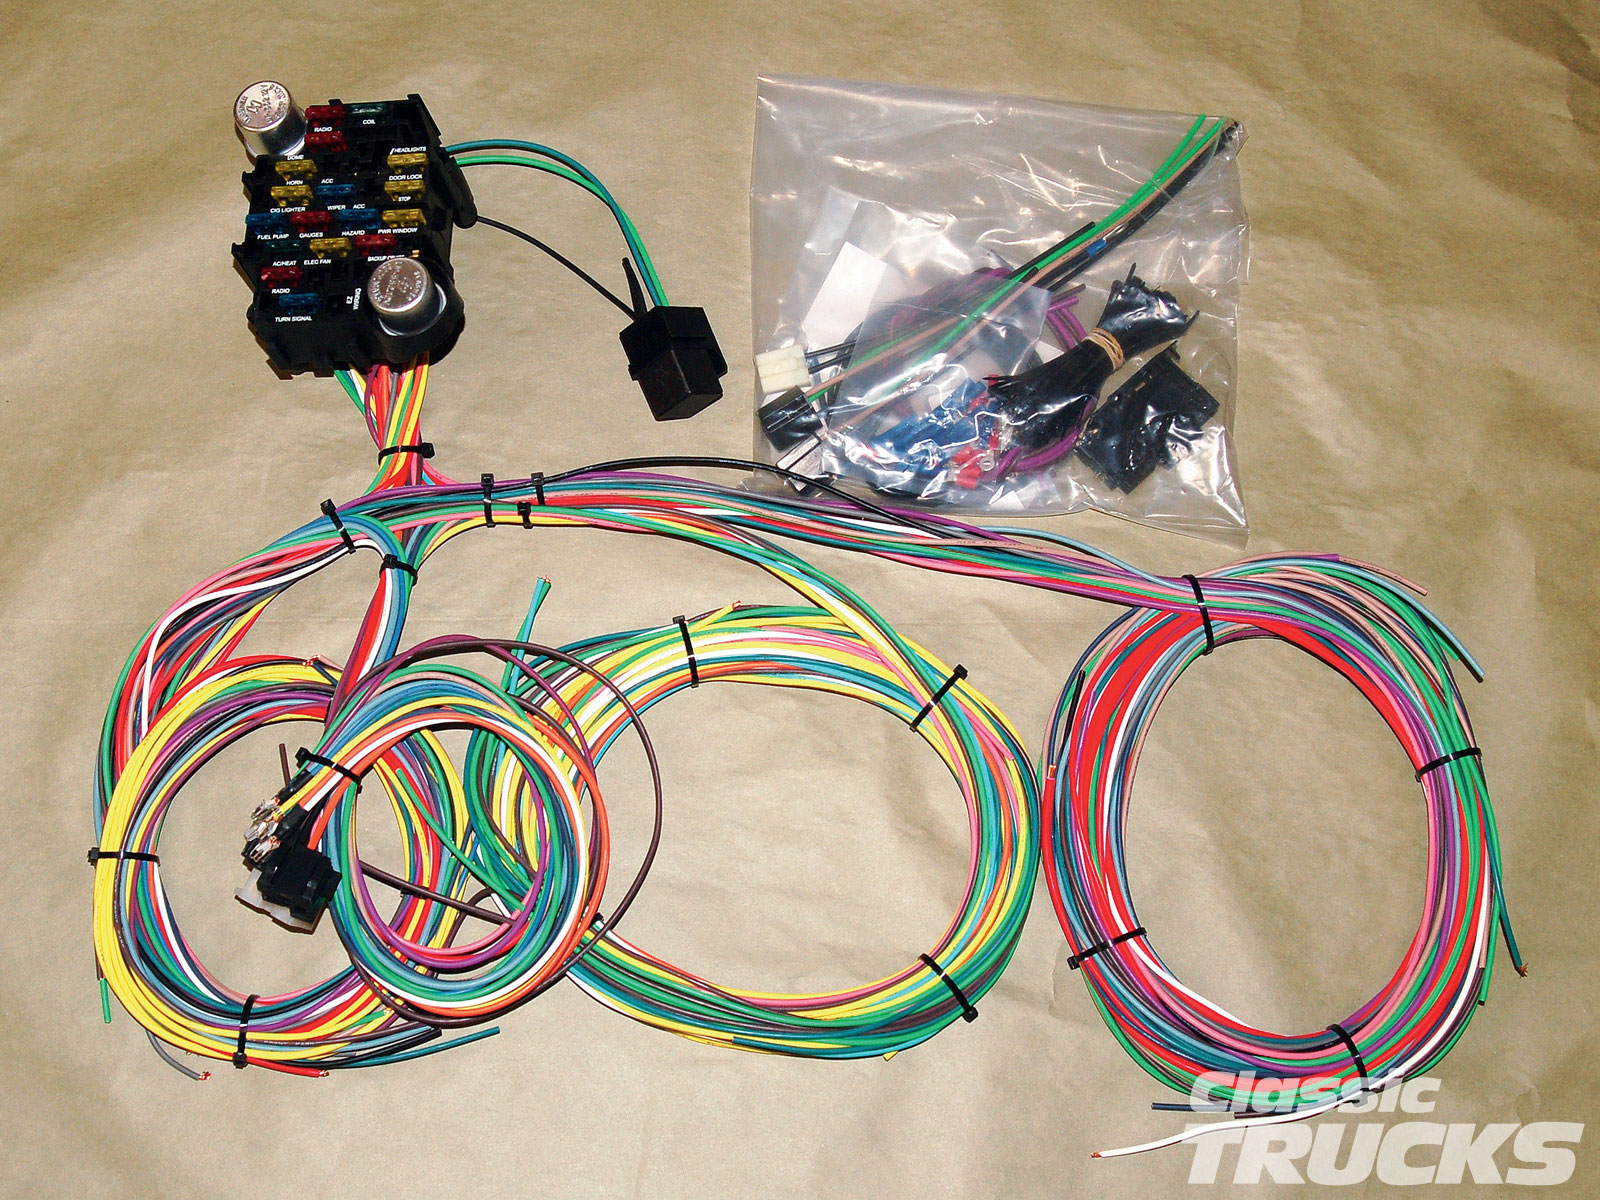 1010clt 02 o aftermarket wiring harness install kit?resize=640%2C480 how much does a wire harness cost to replace hobbiesxstyle how much does it cost to replace a wiring harness at eliteediting.co